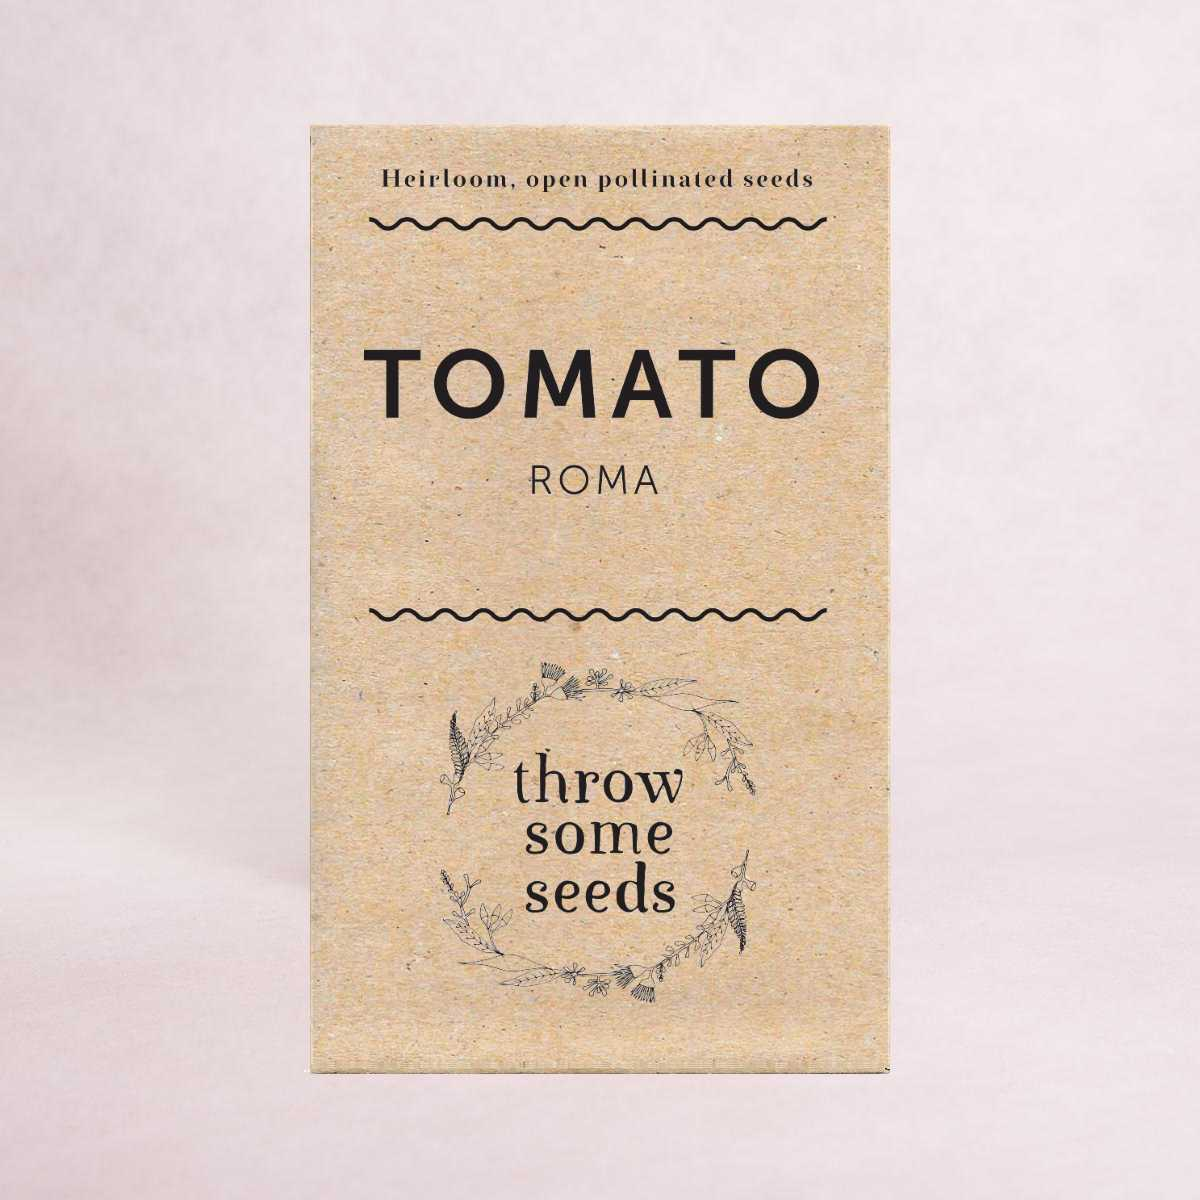 Tomato (Roma) - Heirloom Seeds - Seeds - Throw Some Seeds